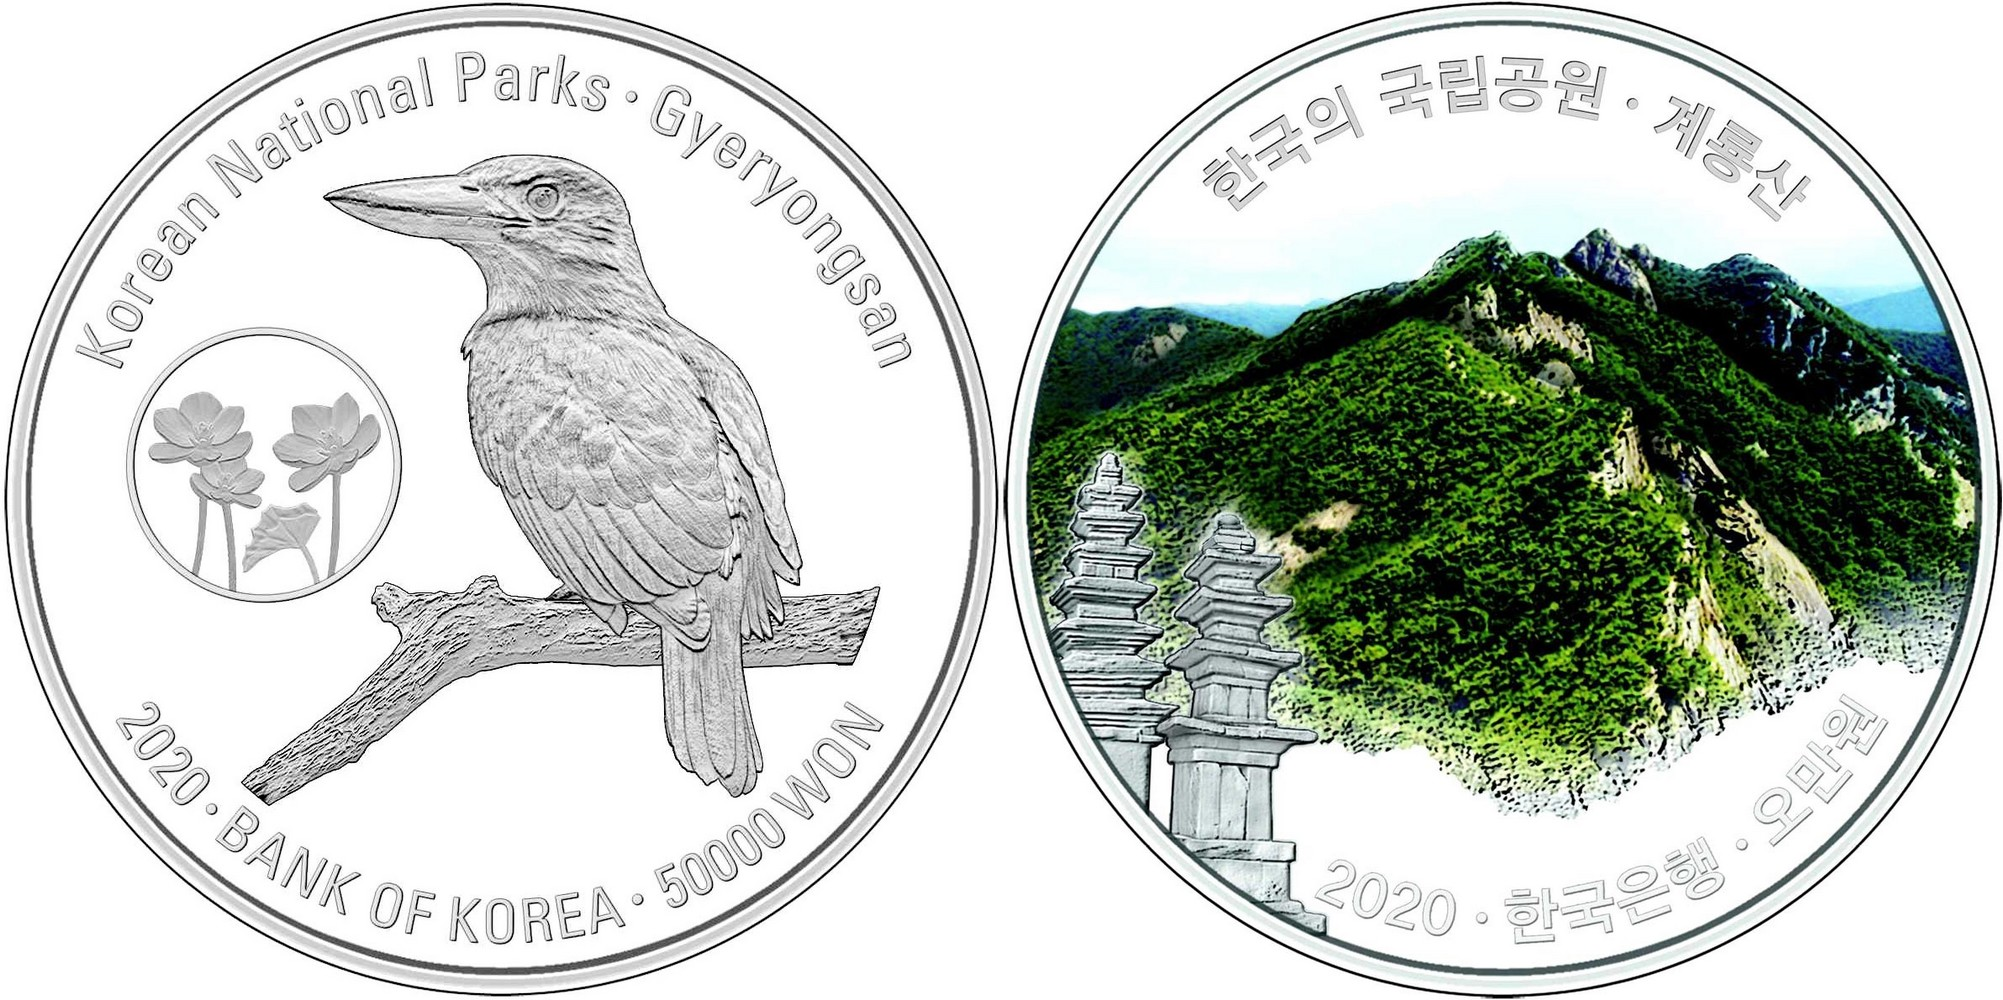 coree-du-sud-2020-parc-nationaux-coreens-gyeryongsan